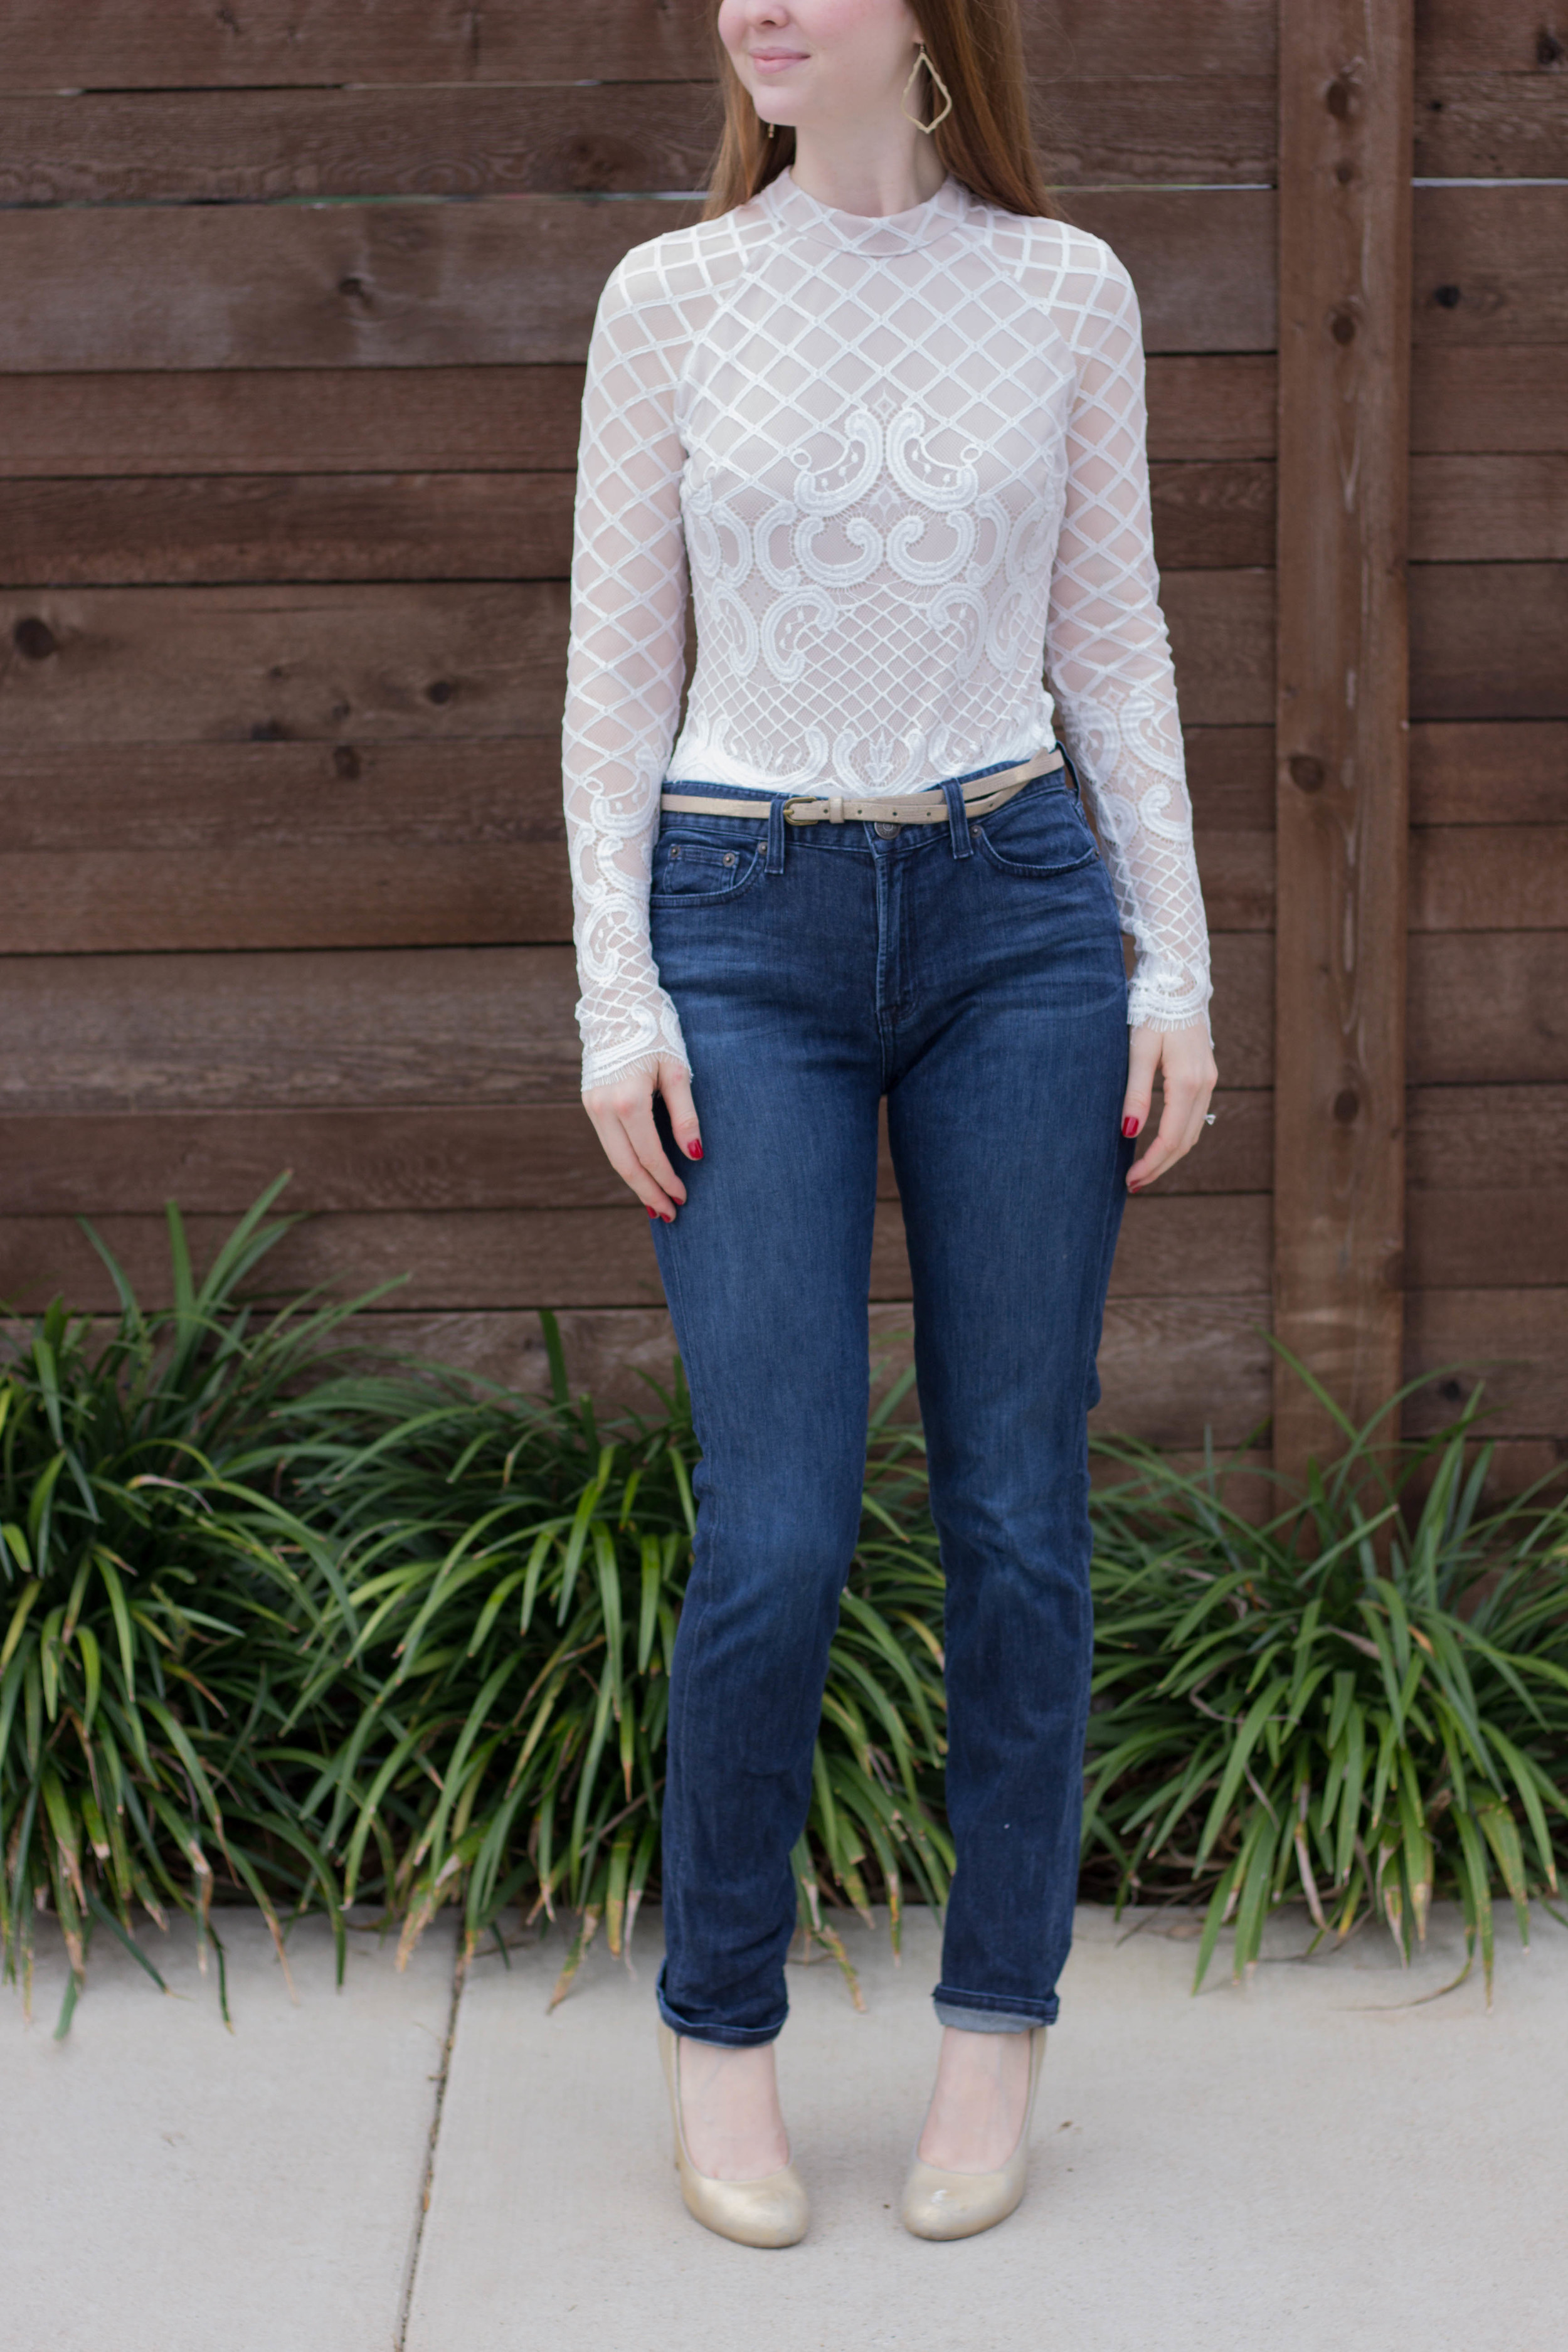 latiste white body suit, j crew high waisted jeans, kimchi blue gold pumps, kendra scott sophee earrings, how to style a bodysuit